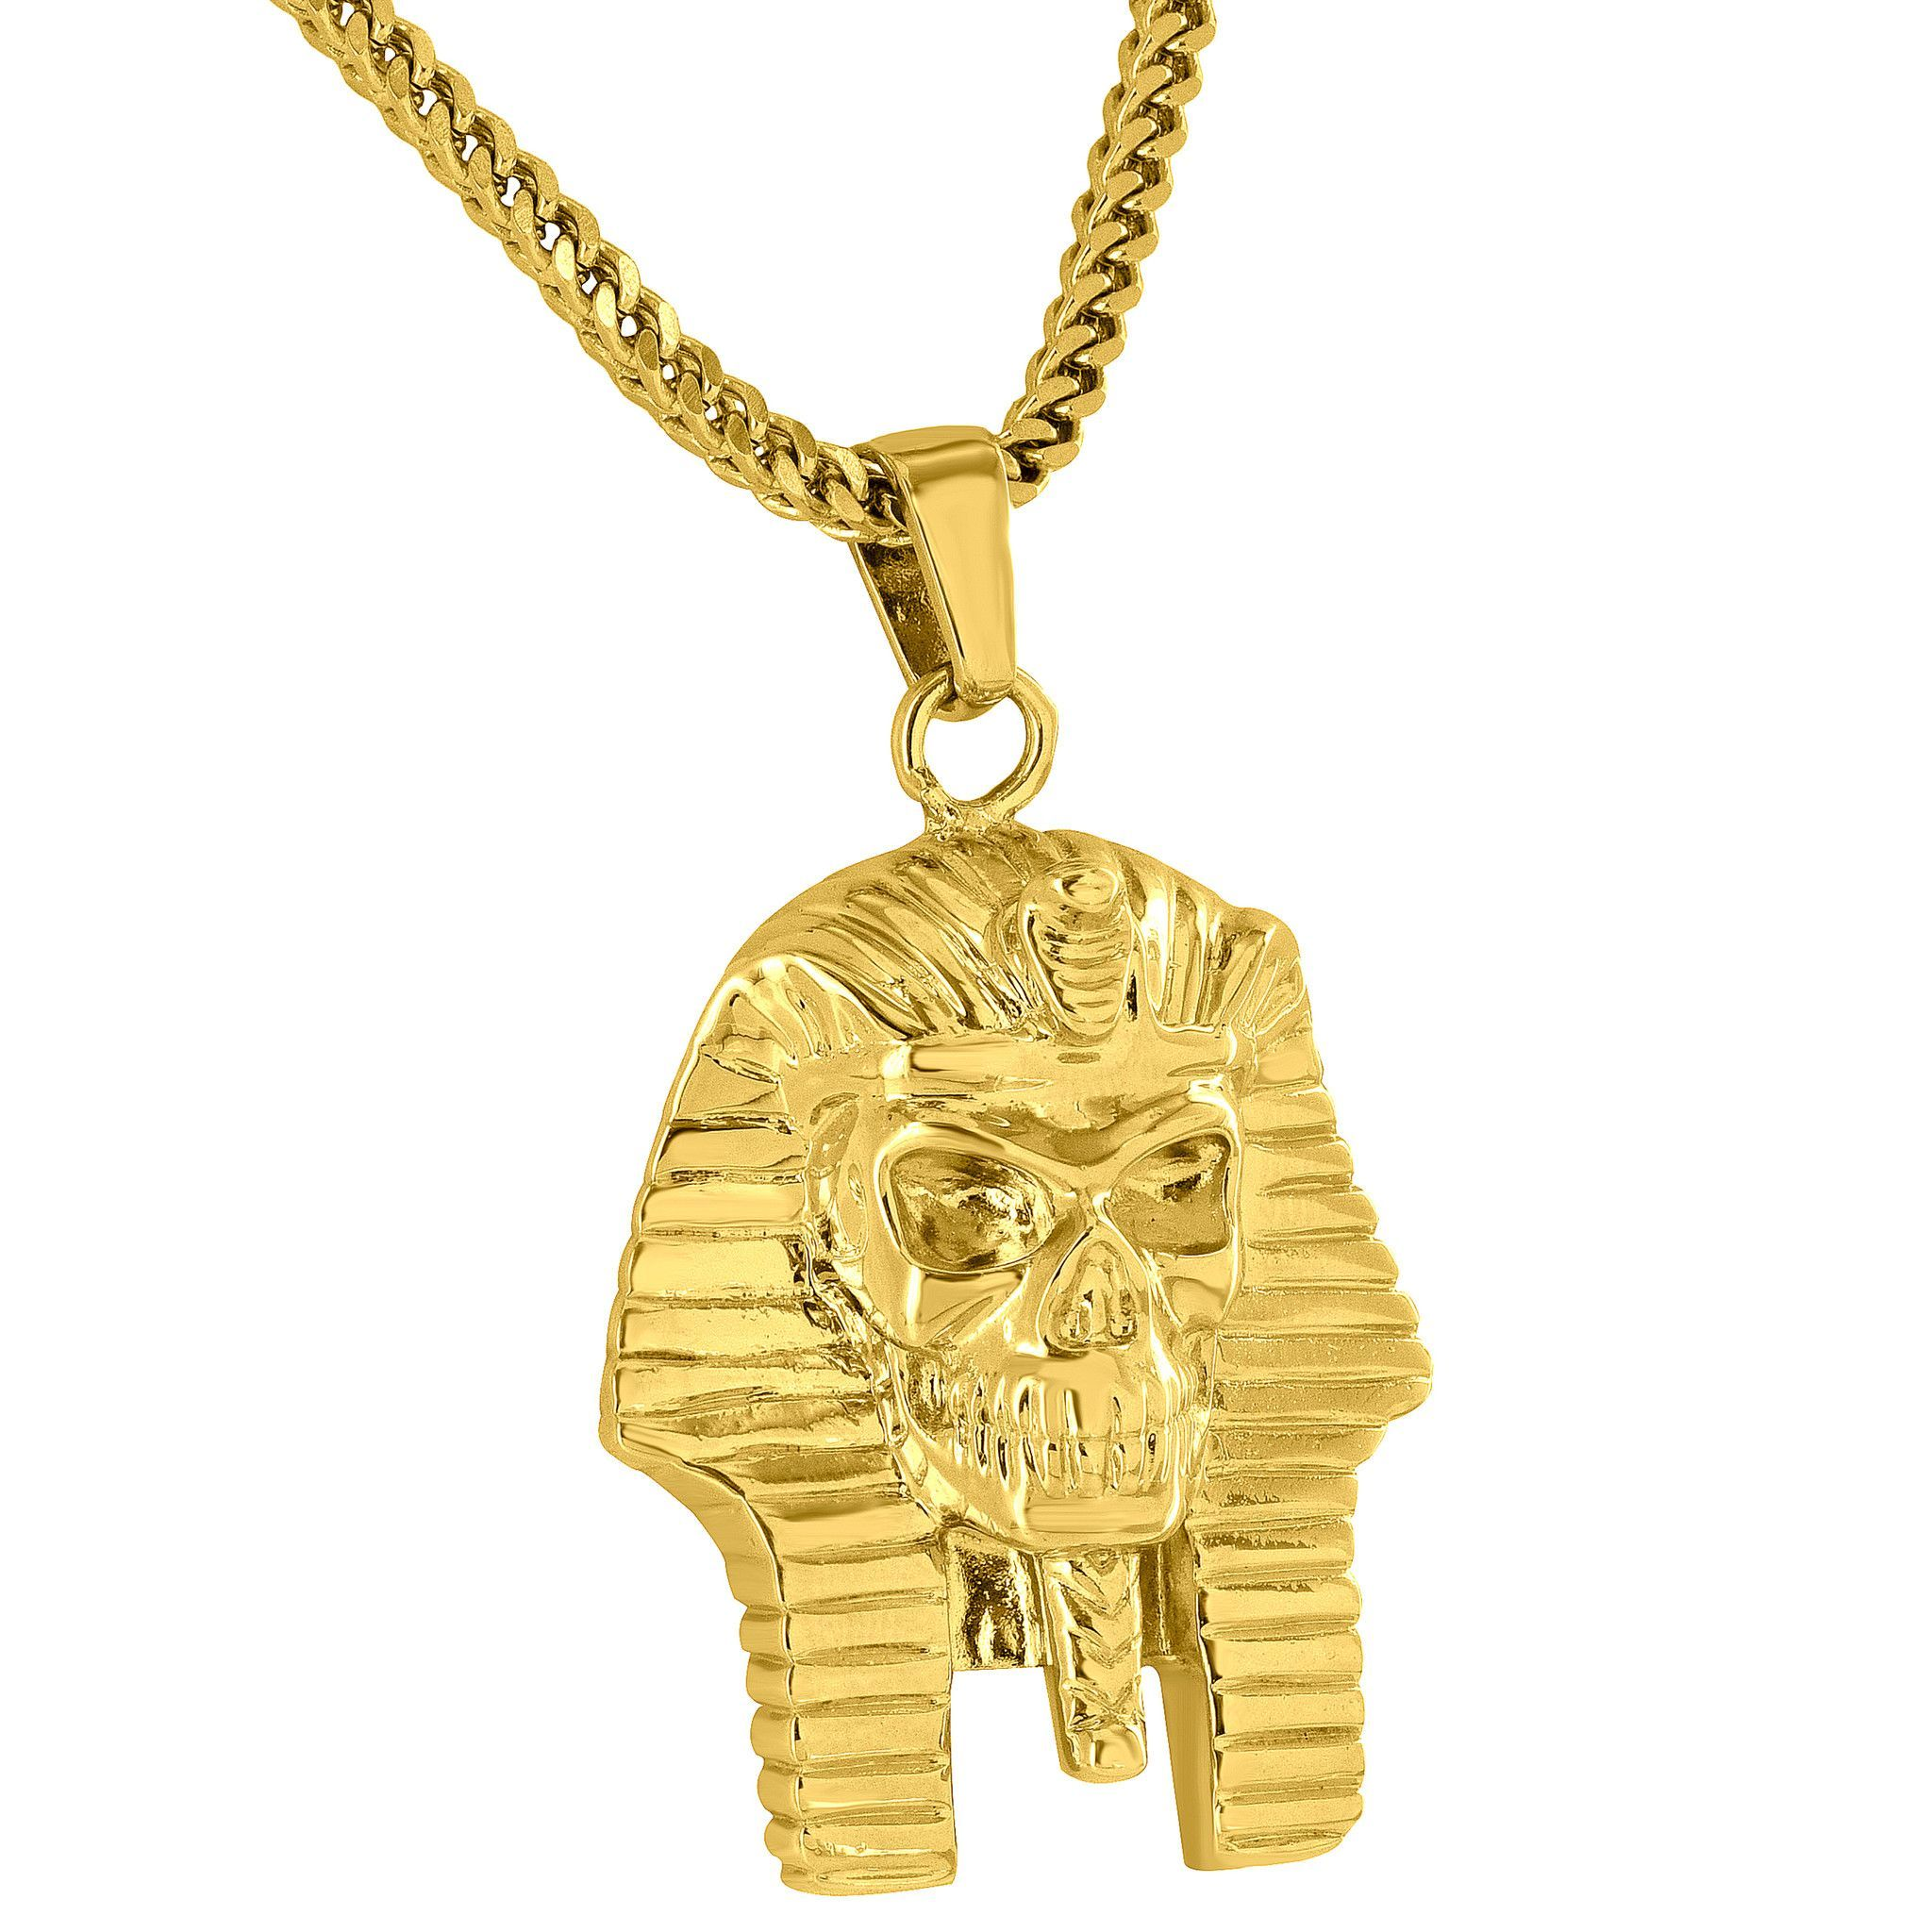 Egyptian pharaoh skull pendant k gold finish free